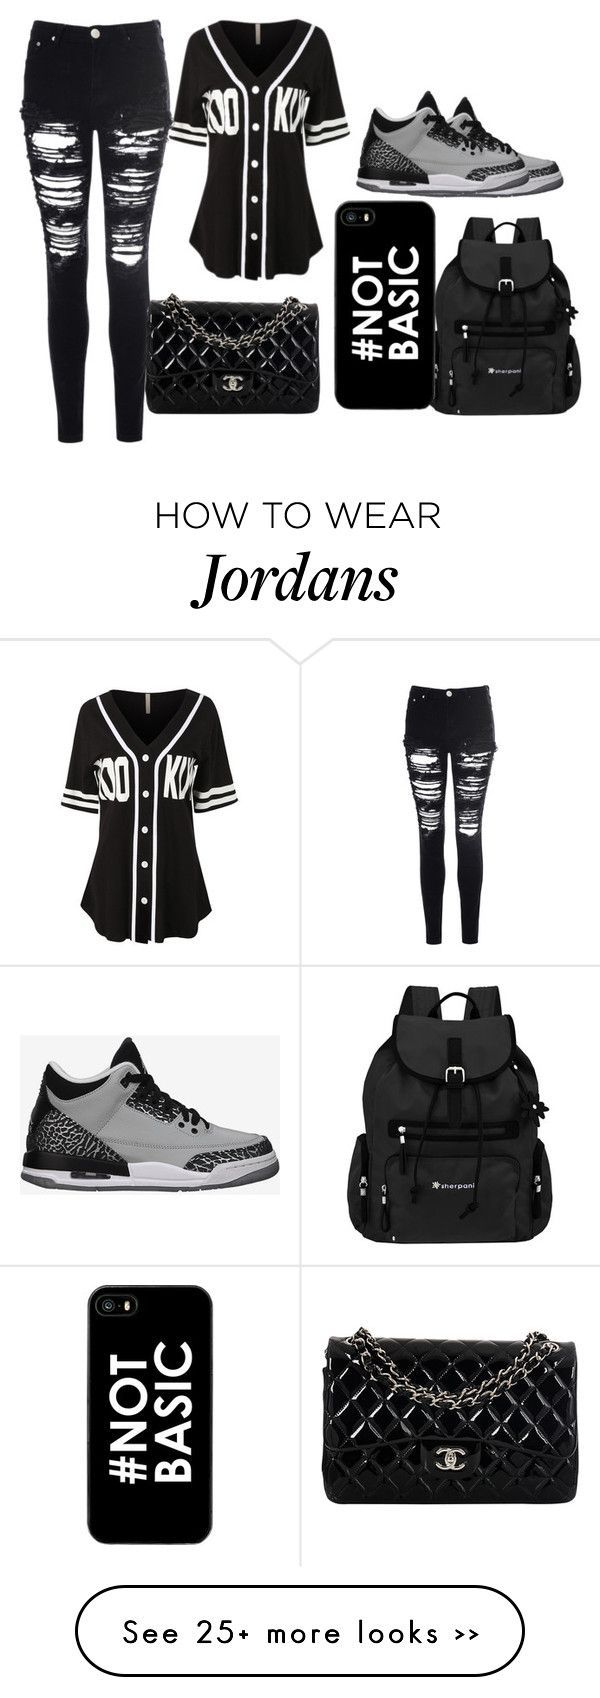 NIKE Women's Shoes - coco by royal174 on Polyvore - NIKE Women's Shoes